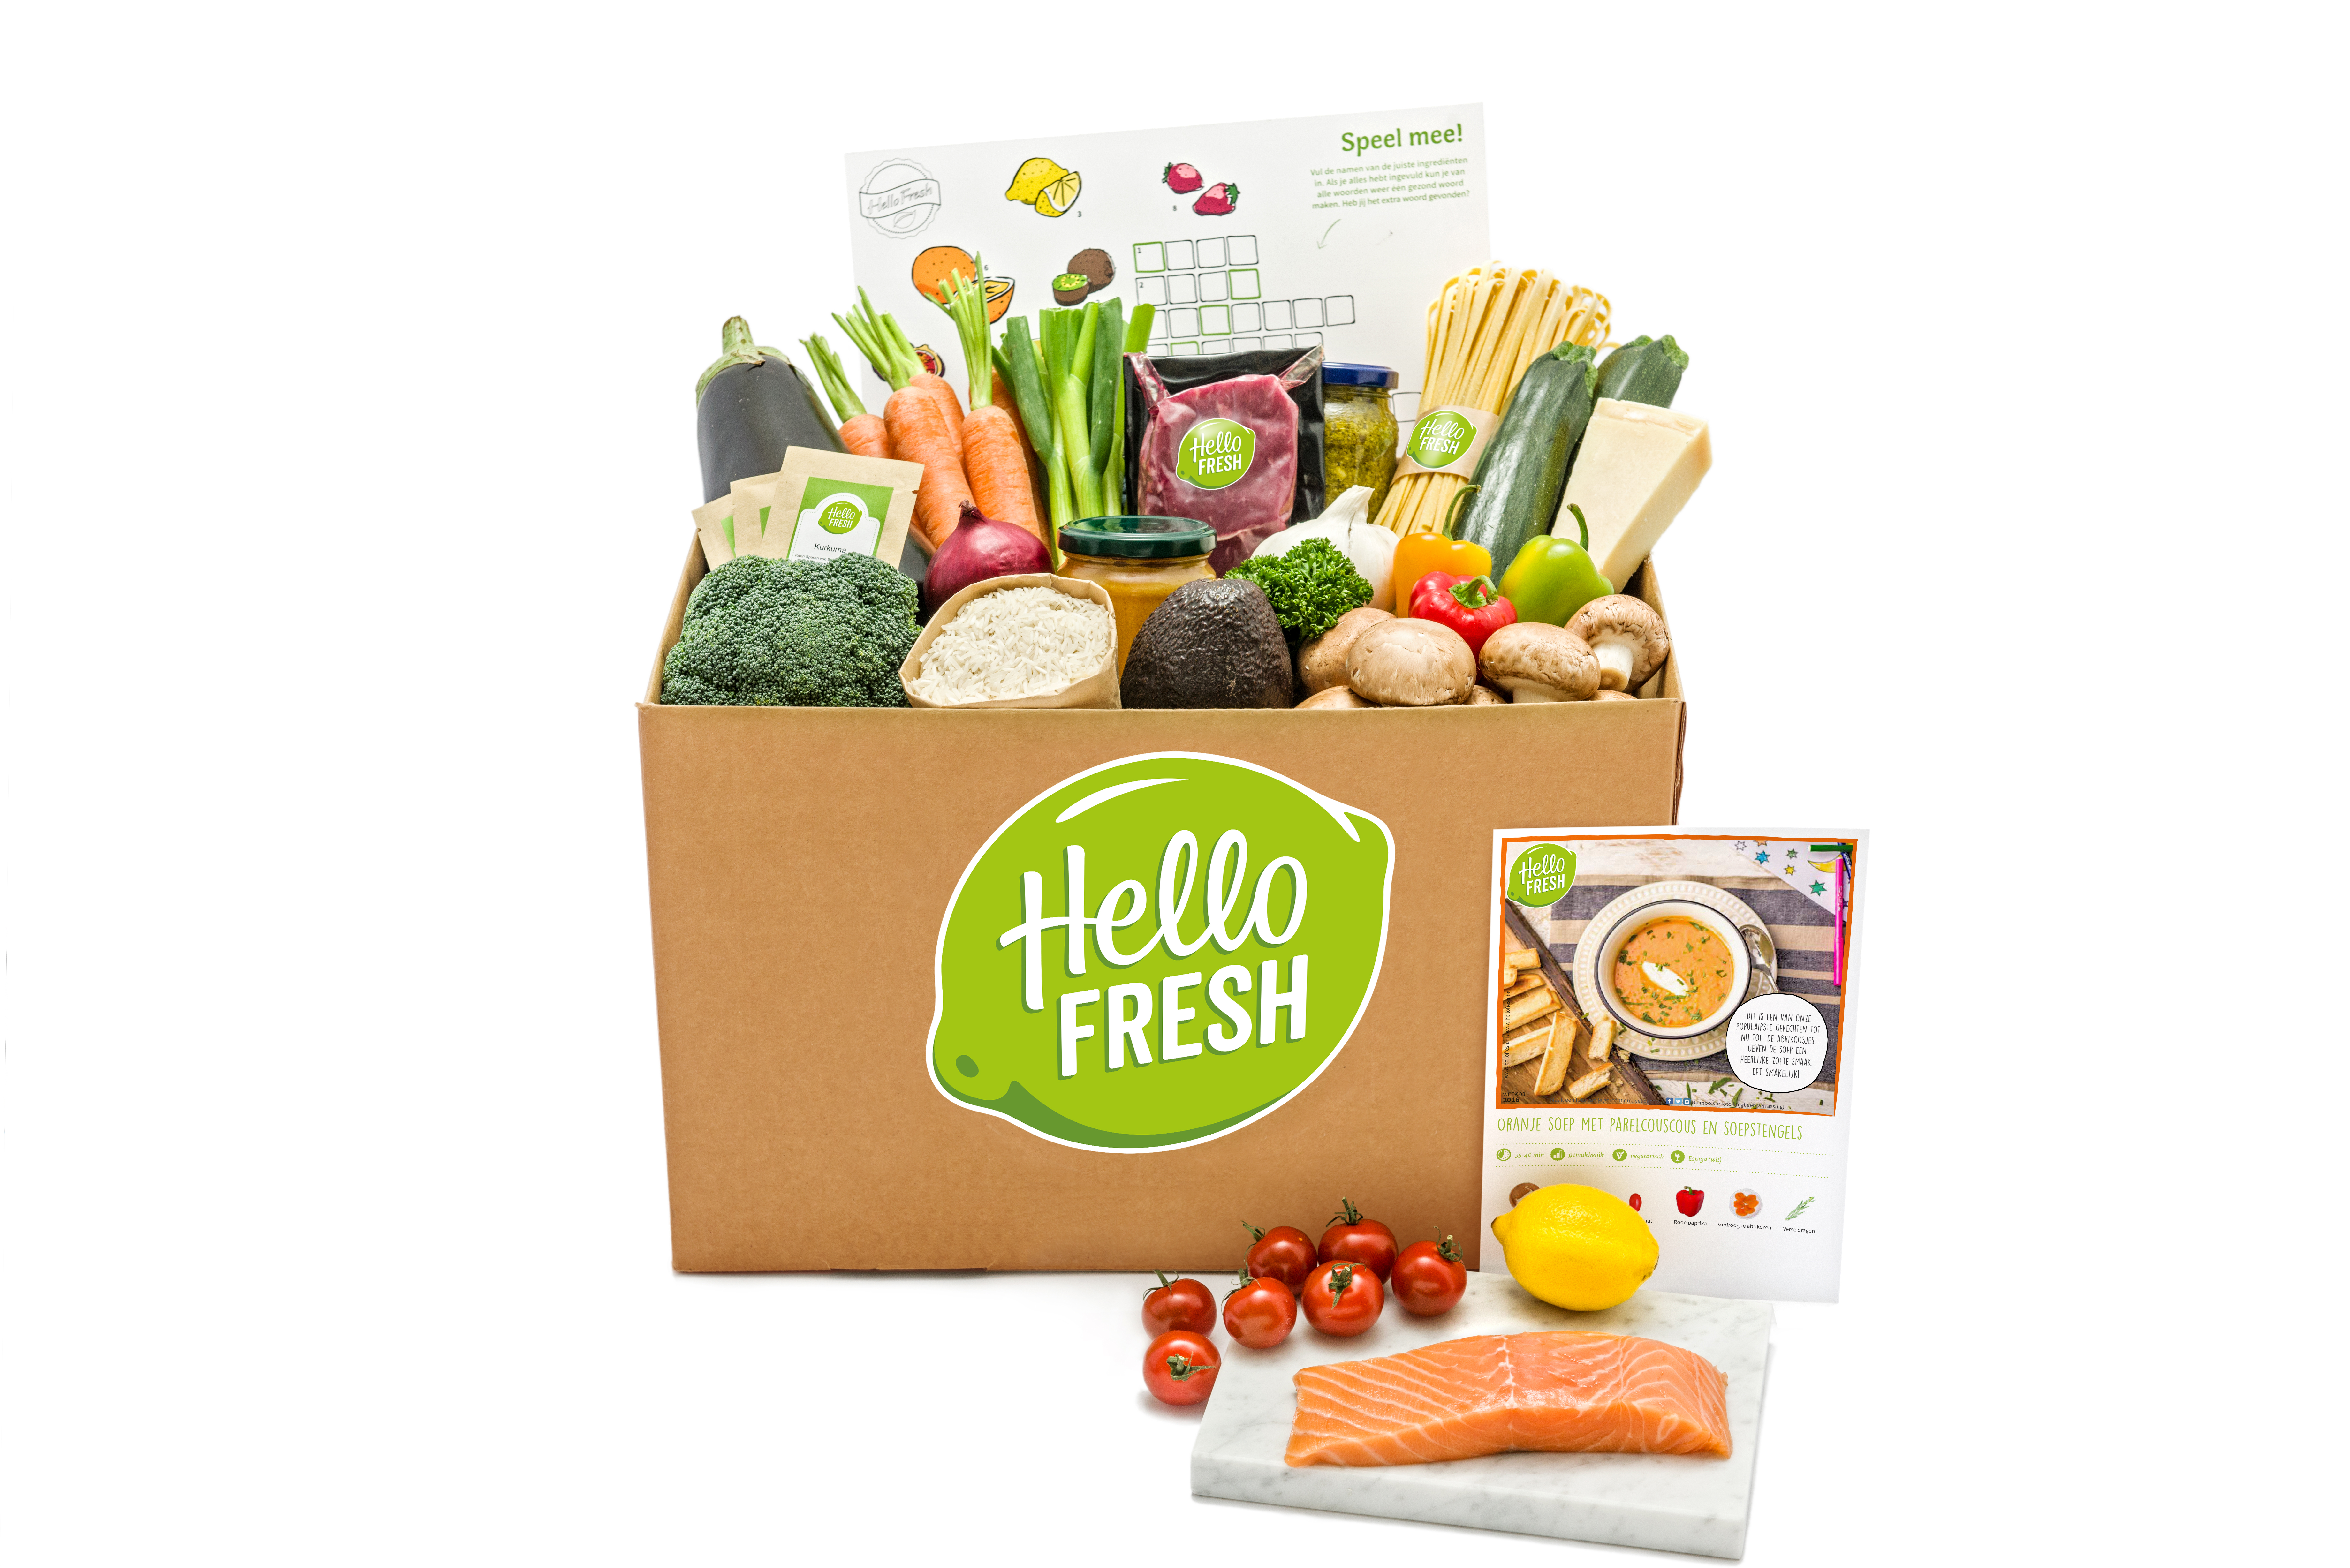 https://cdn.hellofresh.com/lu/cms/press/HelloFresh_Familybox.jpg